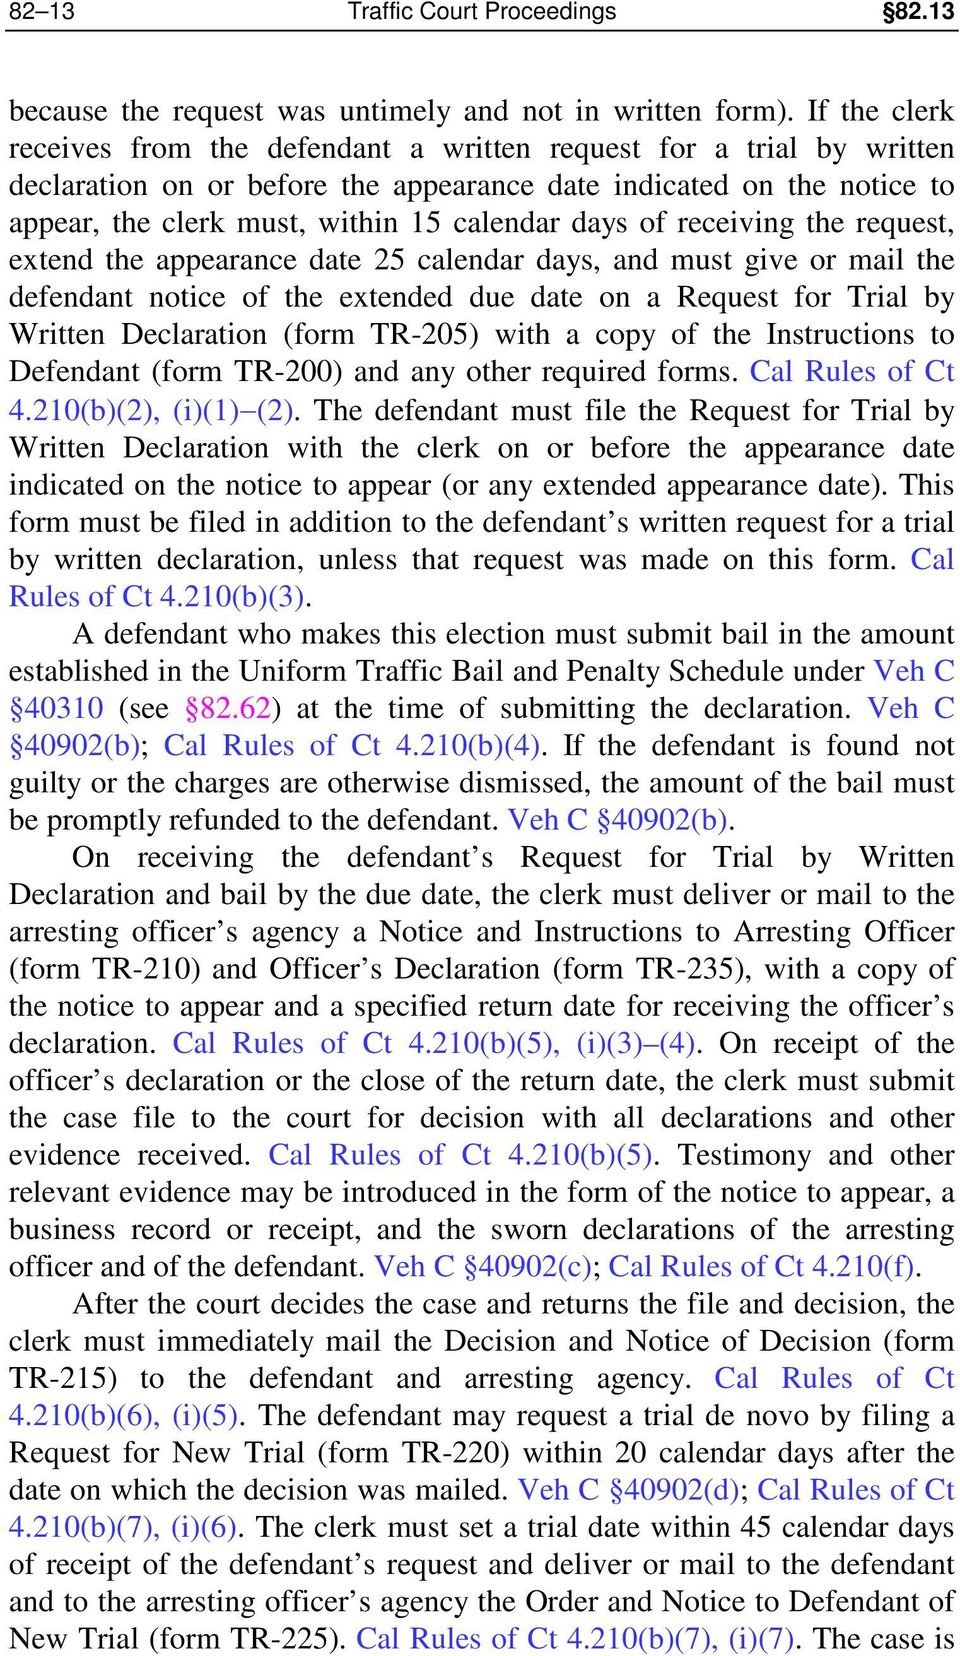 days of receiving the request, extend the appearance date 25 calendar days, and must give or mail the defendant notice of the extended due date on a Request for Trial by Written Declaration (form